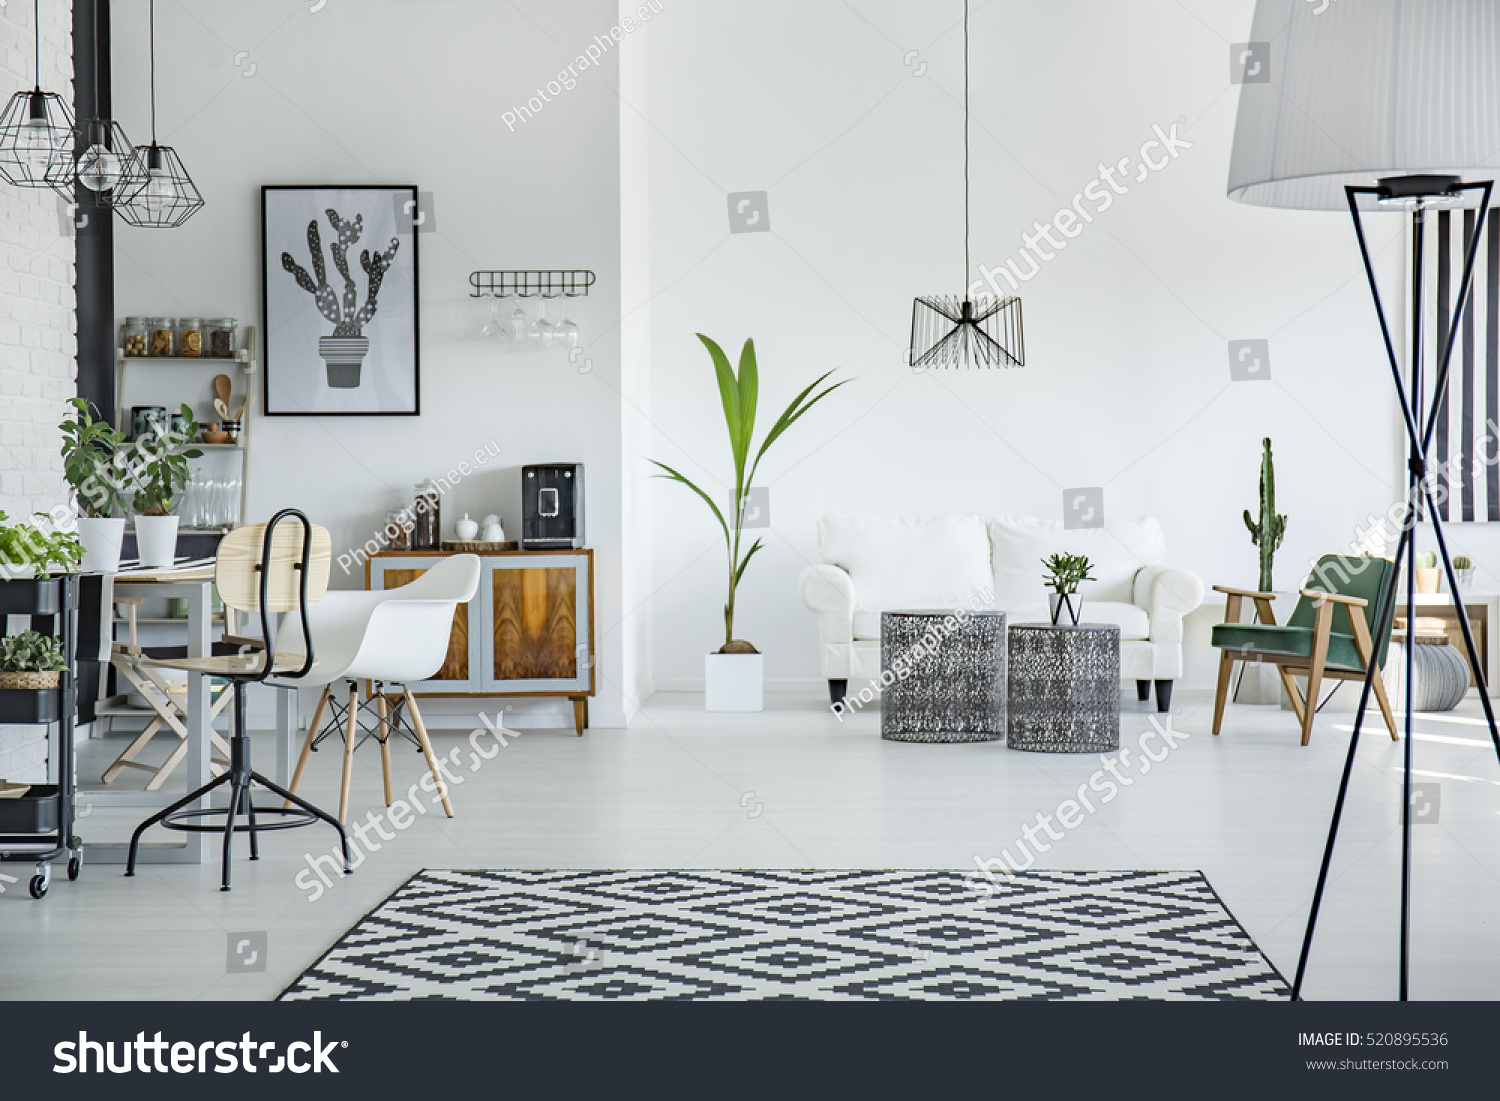 white loft interior scandinavian style pattern stock photo white loft interior in scandinavian style with pattern carpet